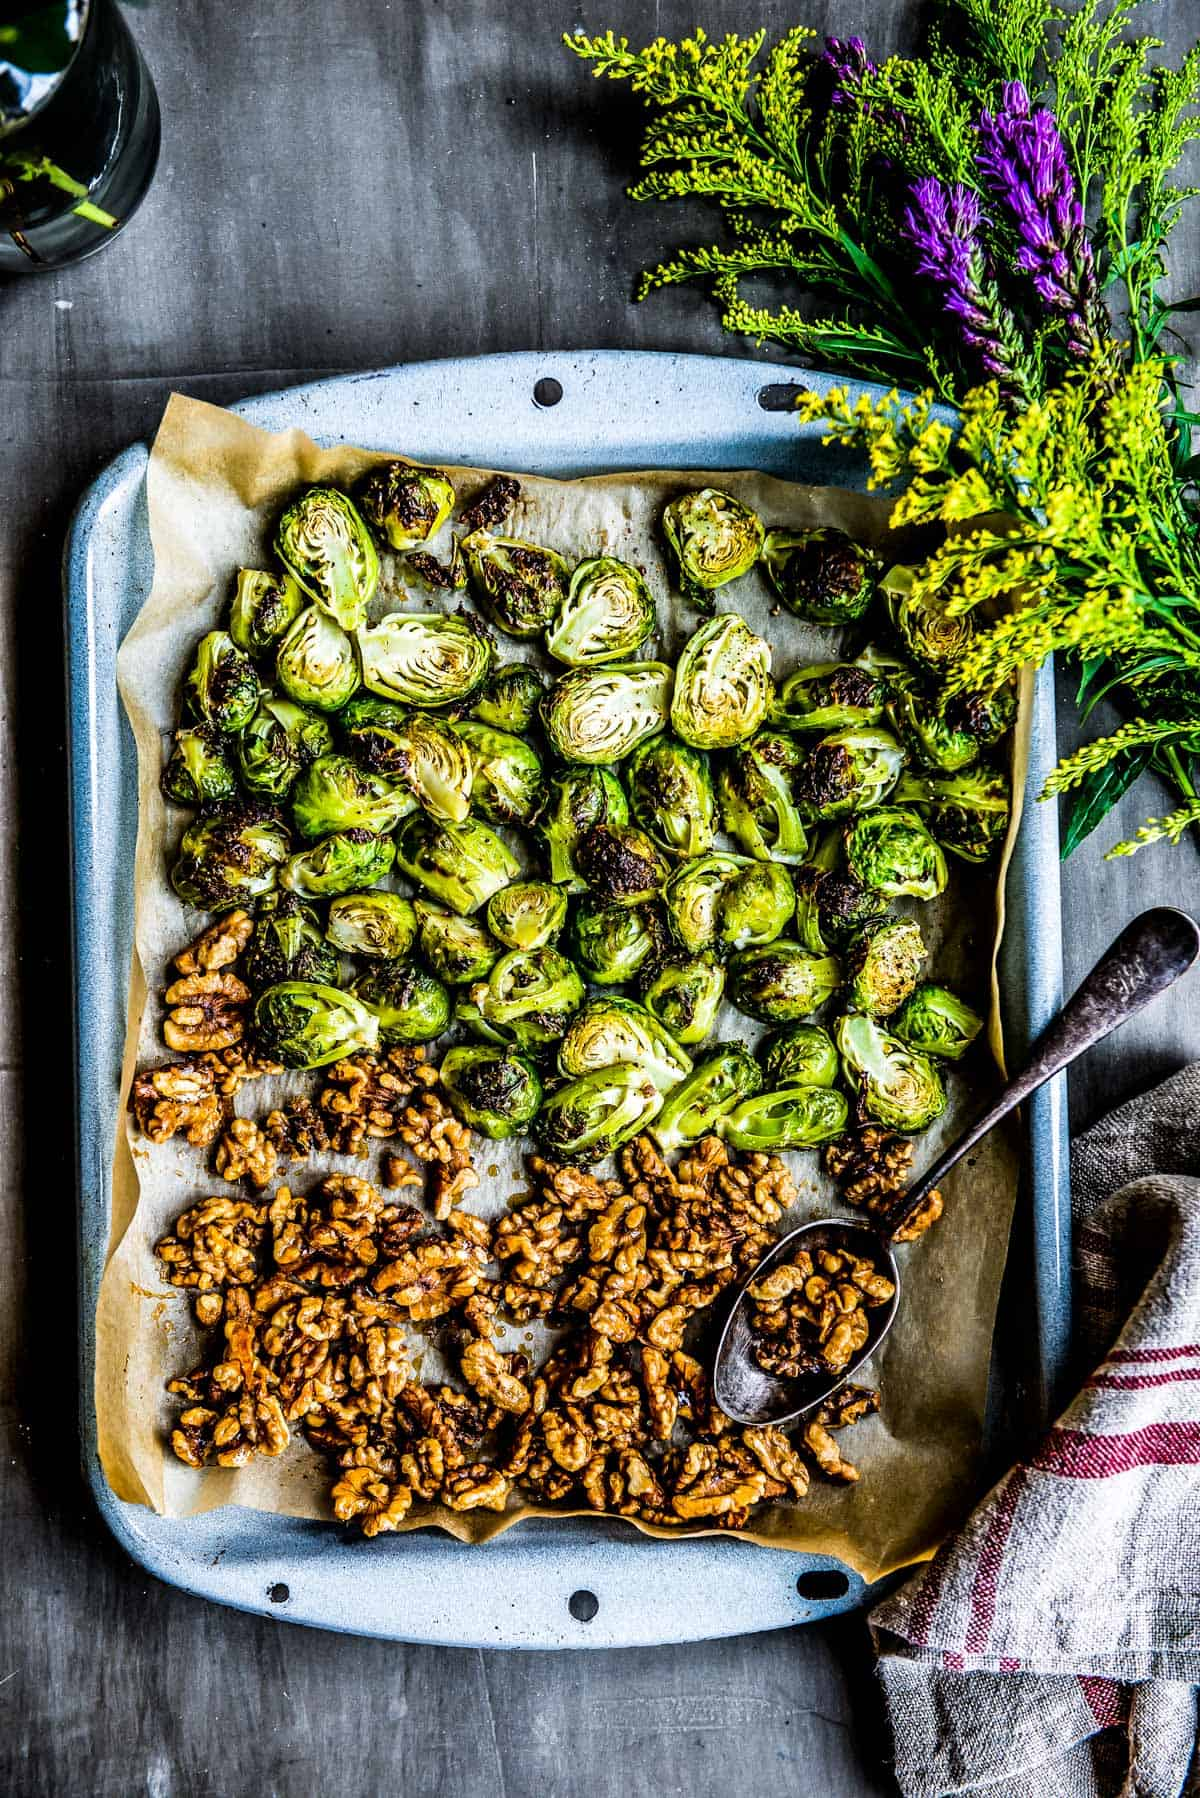 Roasted brussel sprouts with maple walnuts